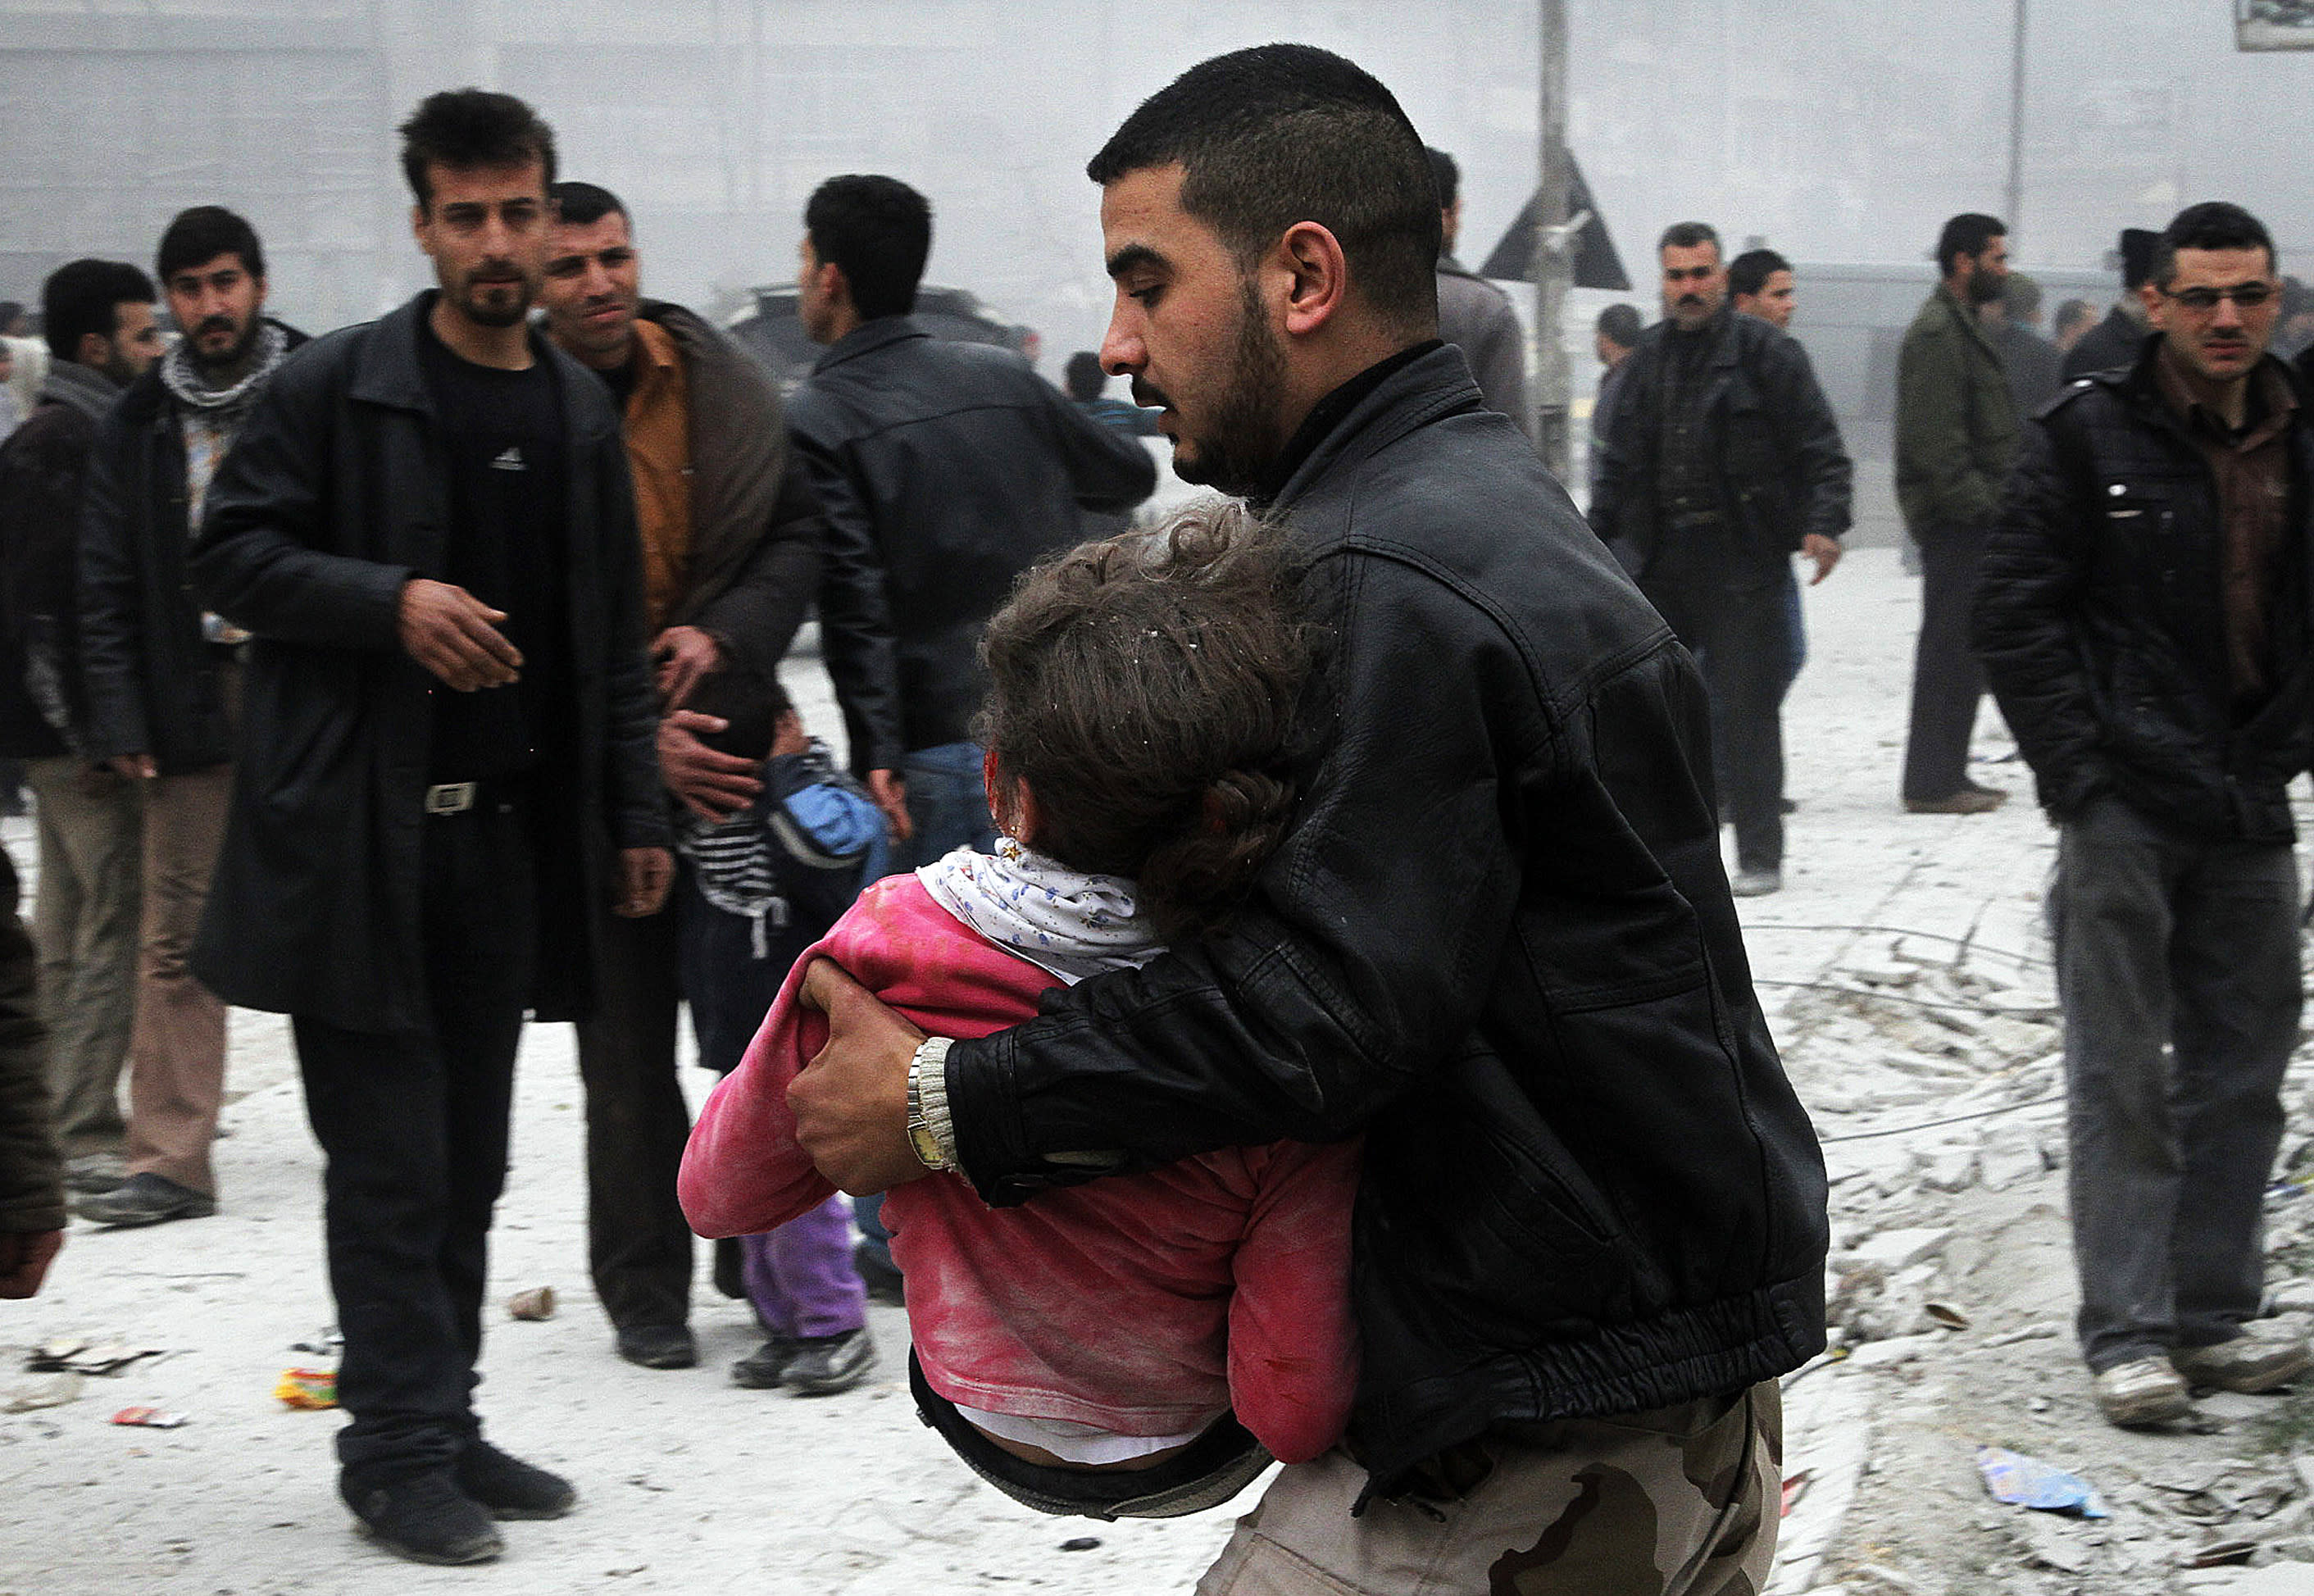 Syrian man carries his relative who was wounded by a government airstrike hit the neighborhood of Ansari, in Aleppo, Syria, Sunday, Feb. 3, 2013. The Britain-based activist group Syrian Observatory for Human Rights, which opposes the regime, said government troops bombarded a building in Aleppo's rebel-held neighborhood of Eastern Ansari that killed over 10 people, including at least five children. (AP Photo/Abdullah al-Yassin)